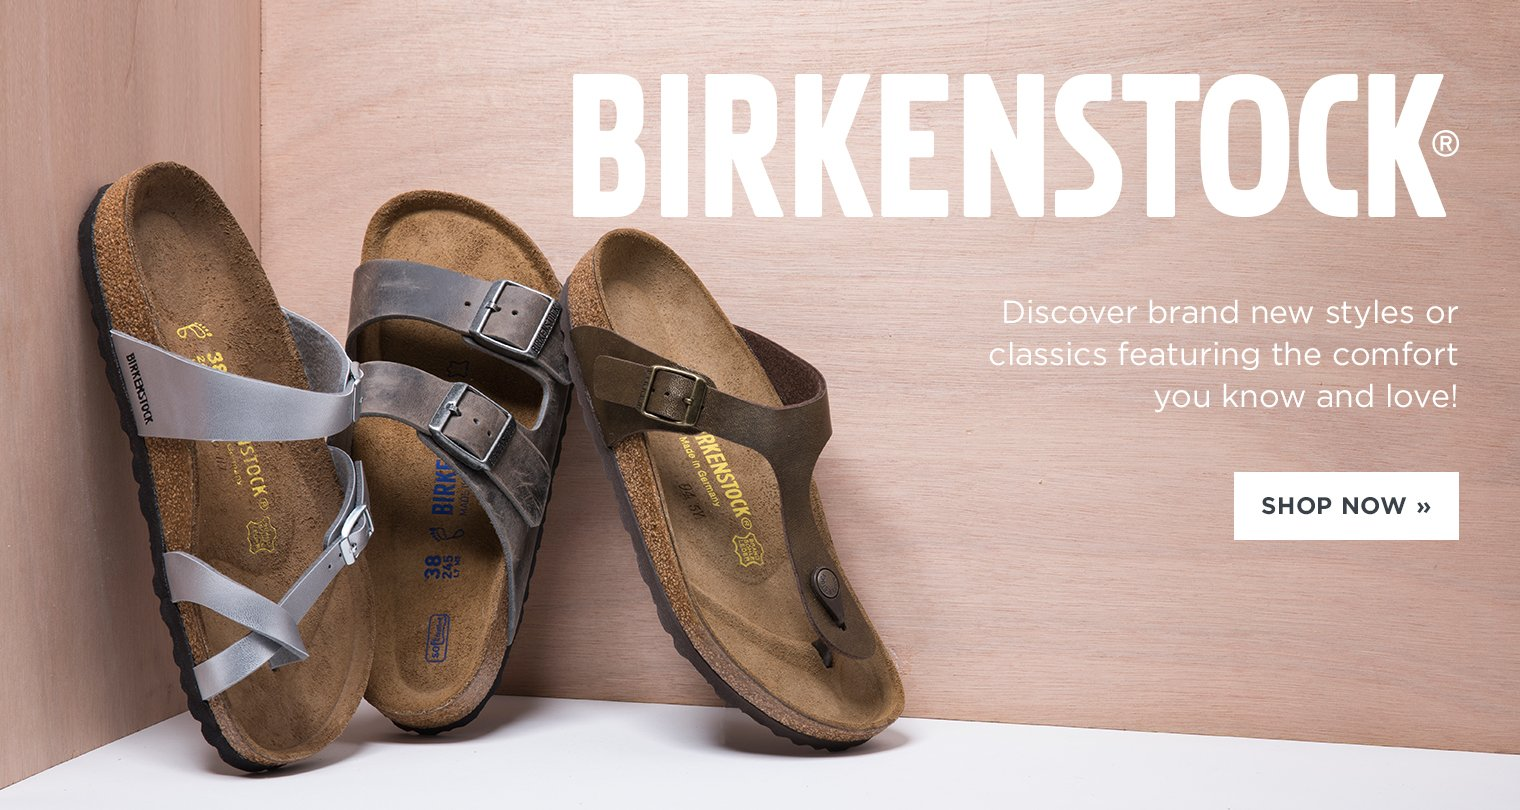 Birkenstock. Discover brand new styles or classic featuring the comfort you know and love! Shop Now.